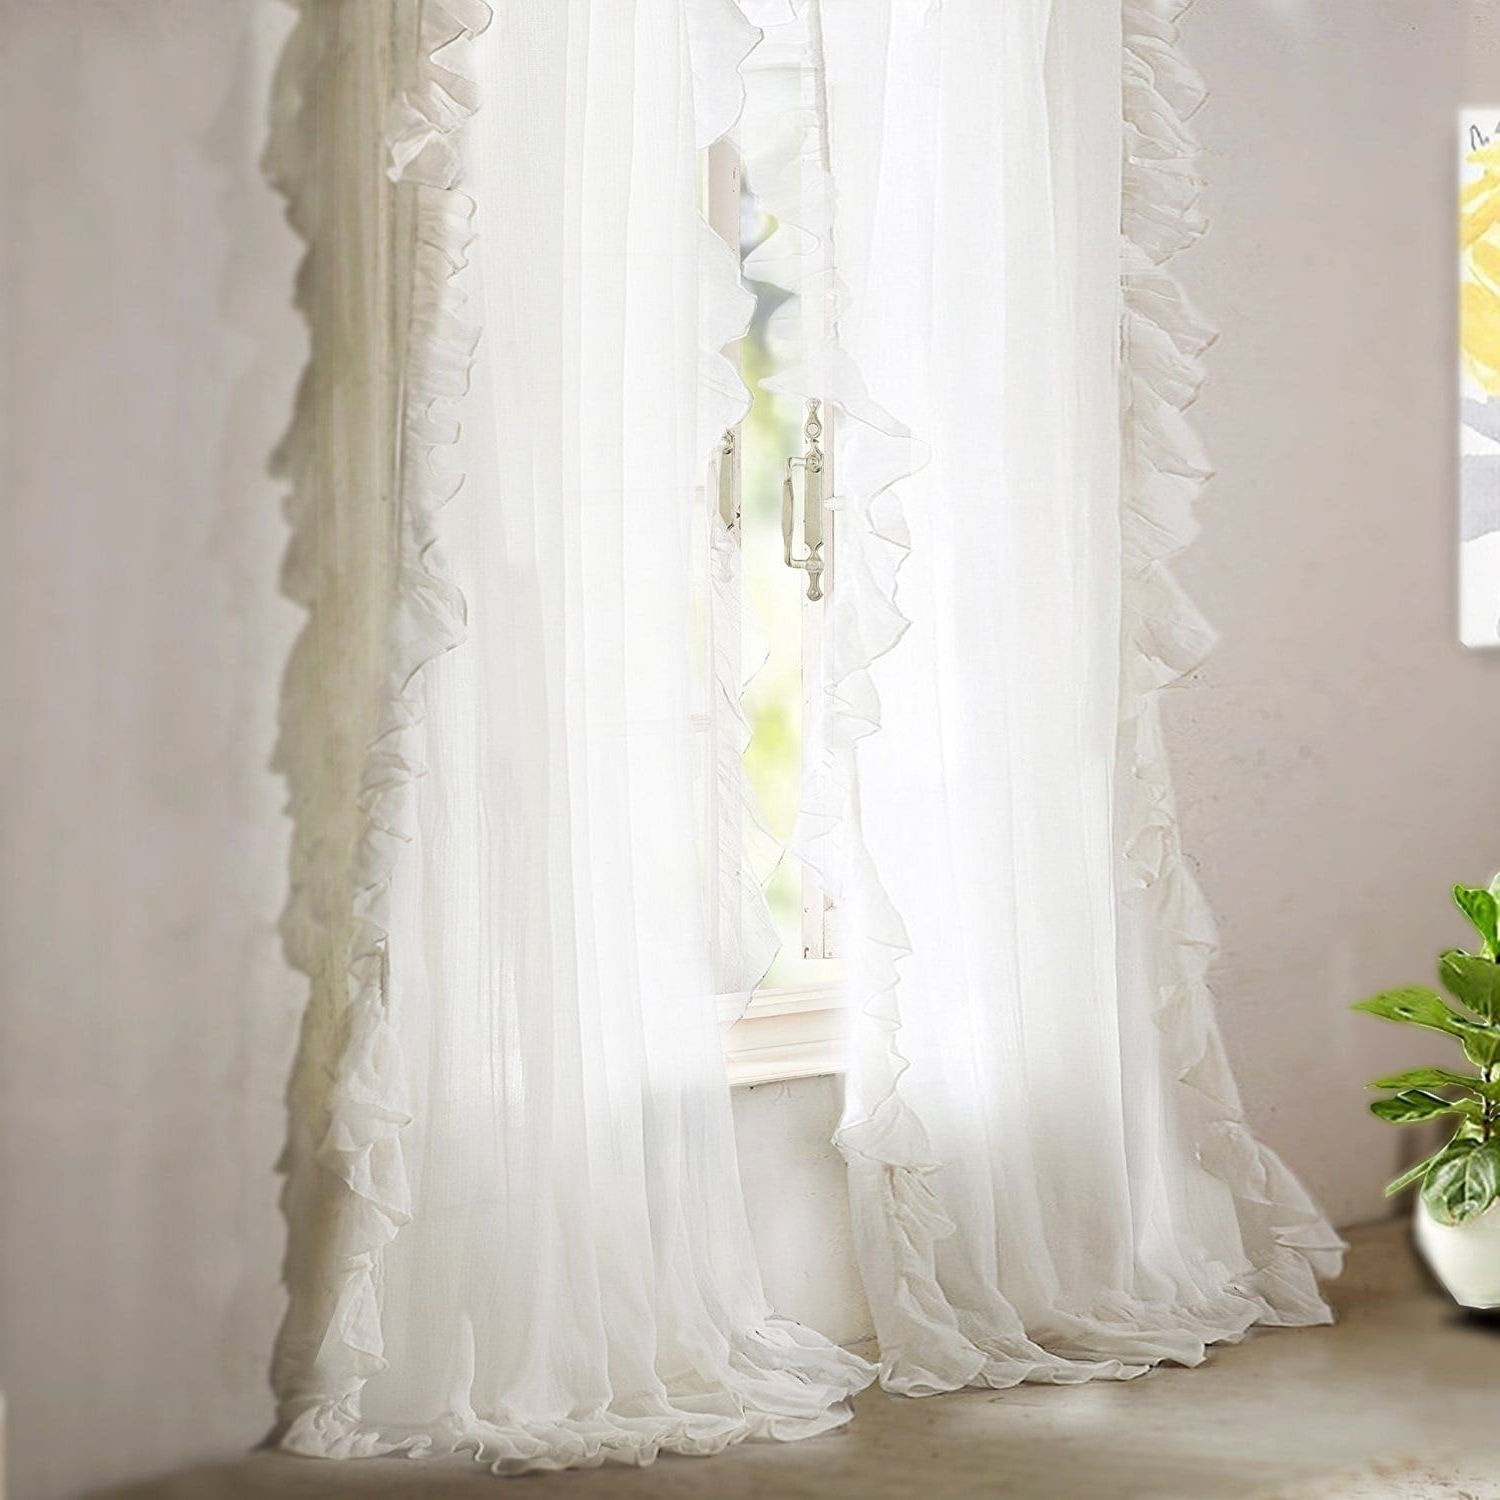 Most Up To Date Drfitaway 2 Panels Sophie Sheer Voile Window Curtains Throughout Sheer Voile Waterfall Ruffled Tier Single Curtain Panels (View 9 of 20)